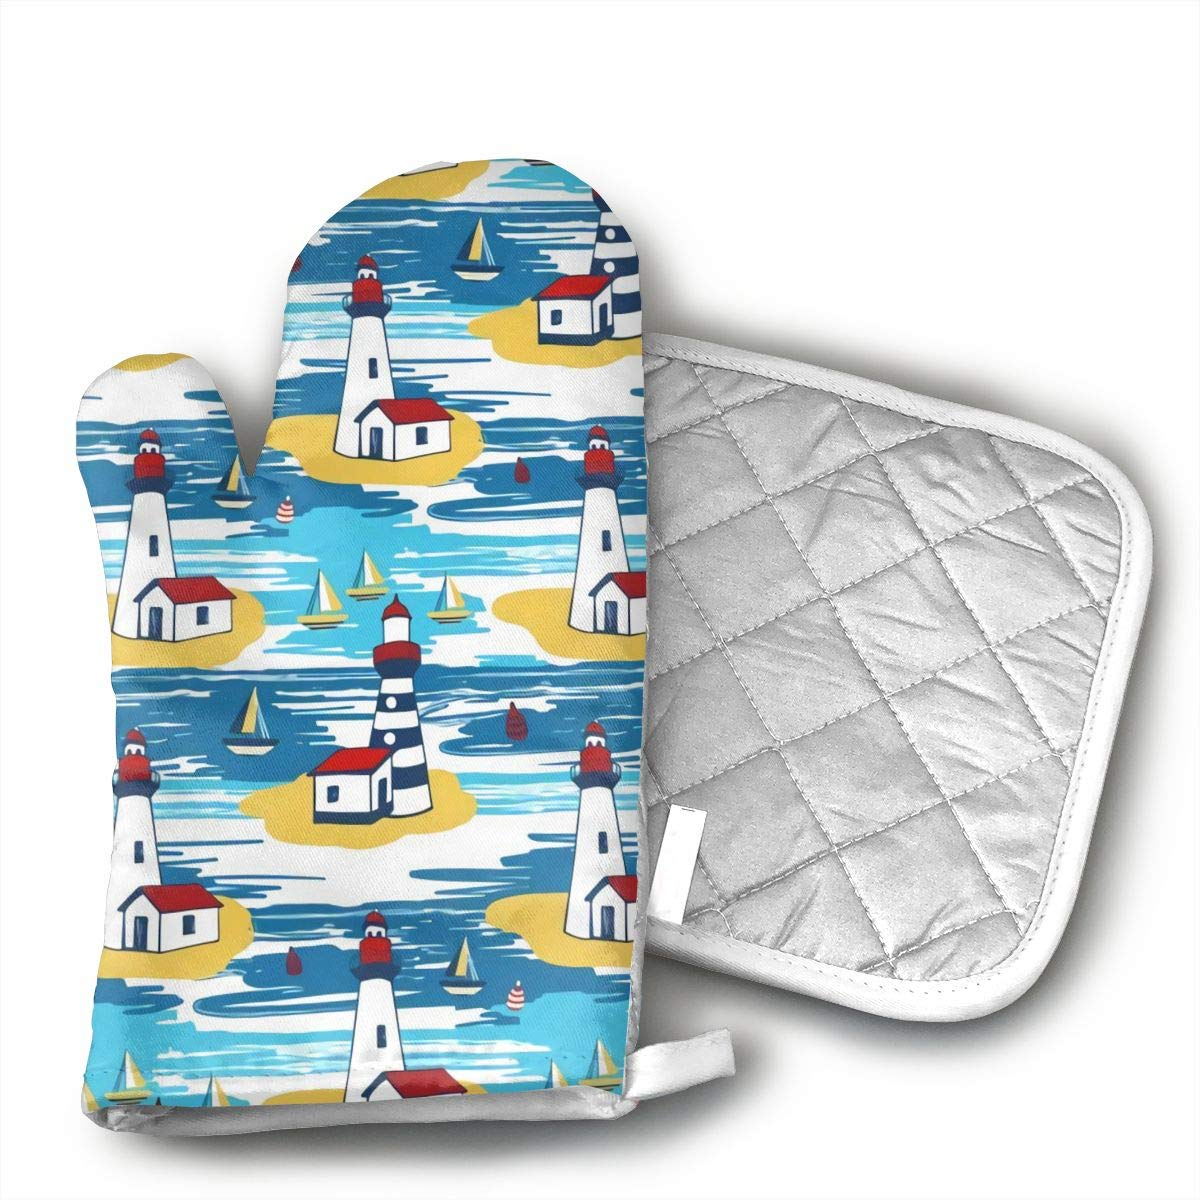 CHFSTi Oven Mitts Colorful Bright Lighthouse Non-Slip Silicone Oven Mitts& Pot Holders, Heat Resistant to 500Fahrenheit Degrees Kitchen Oven Gloves